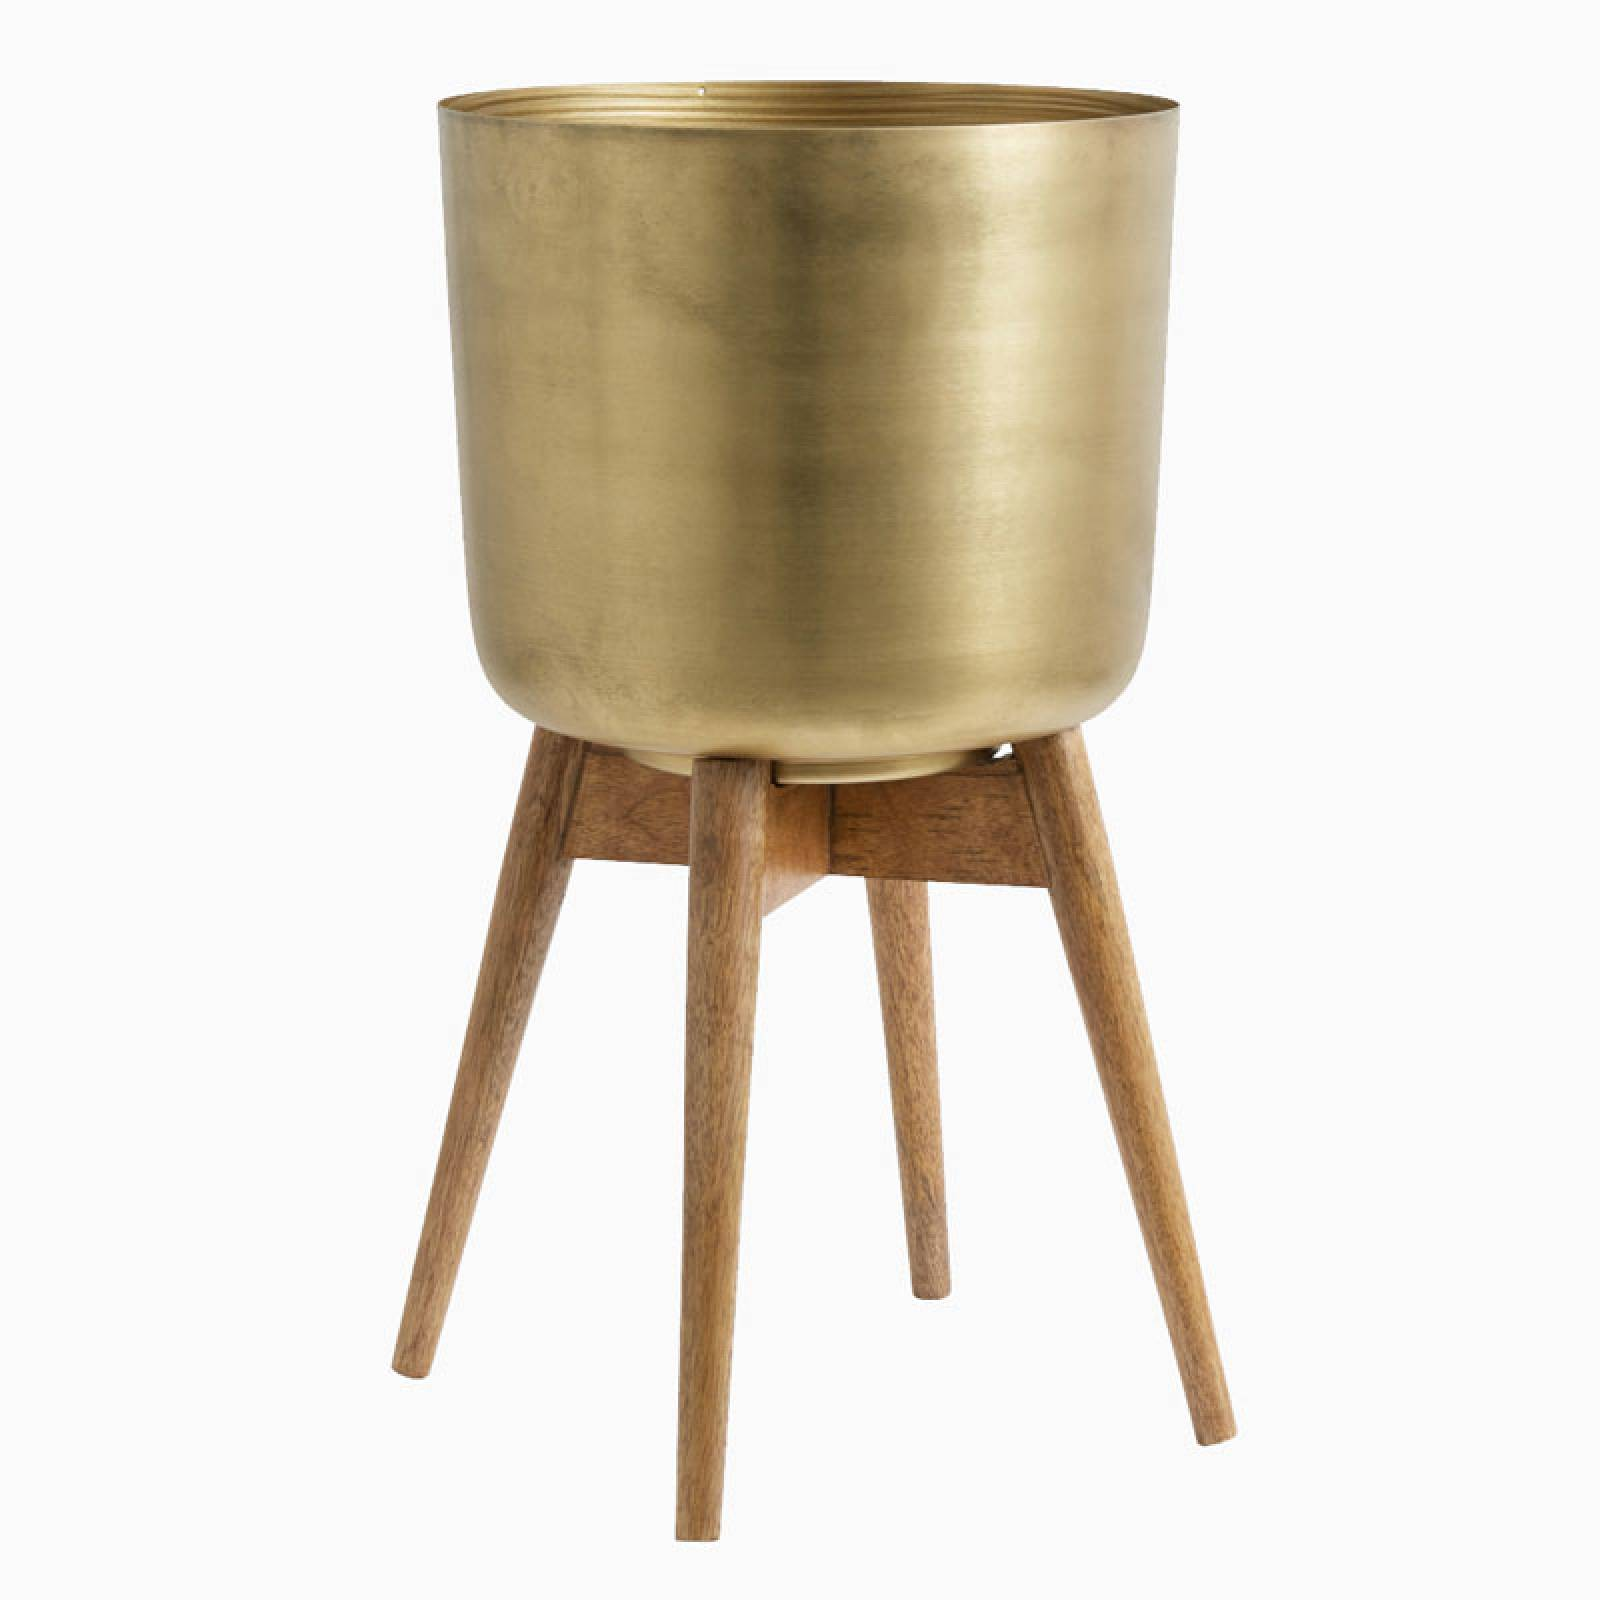 Large Brass Planter With Wooden Base 52cm